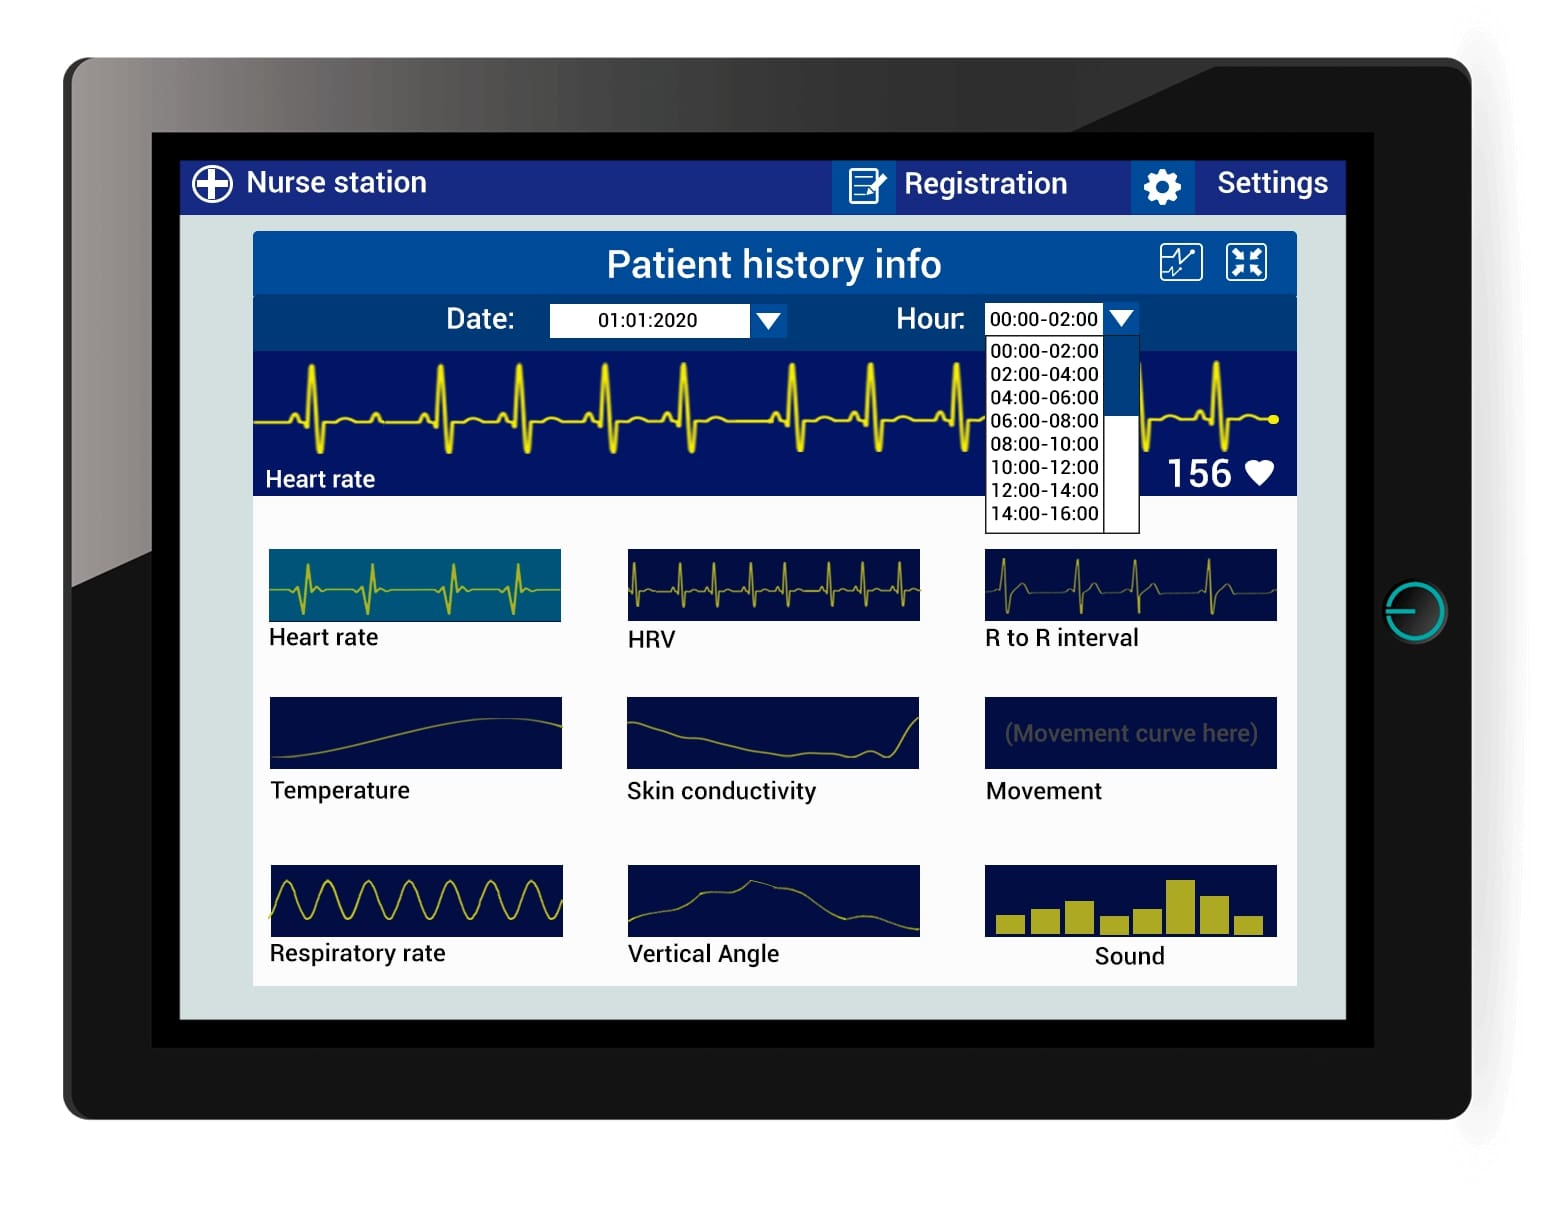 PC - tablet - patient history